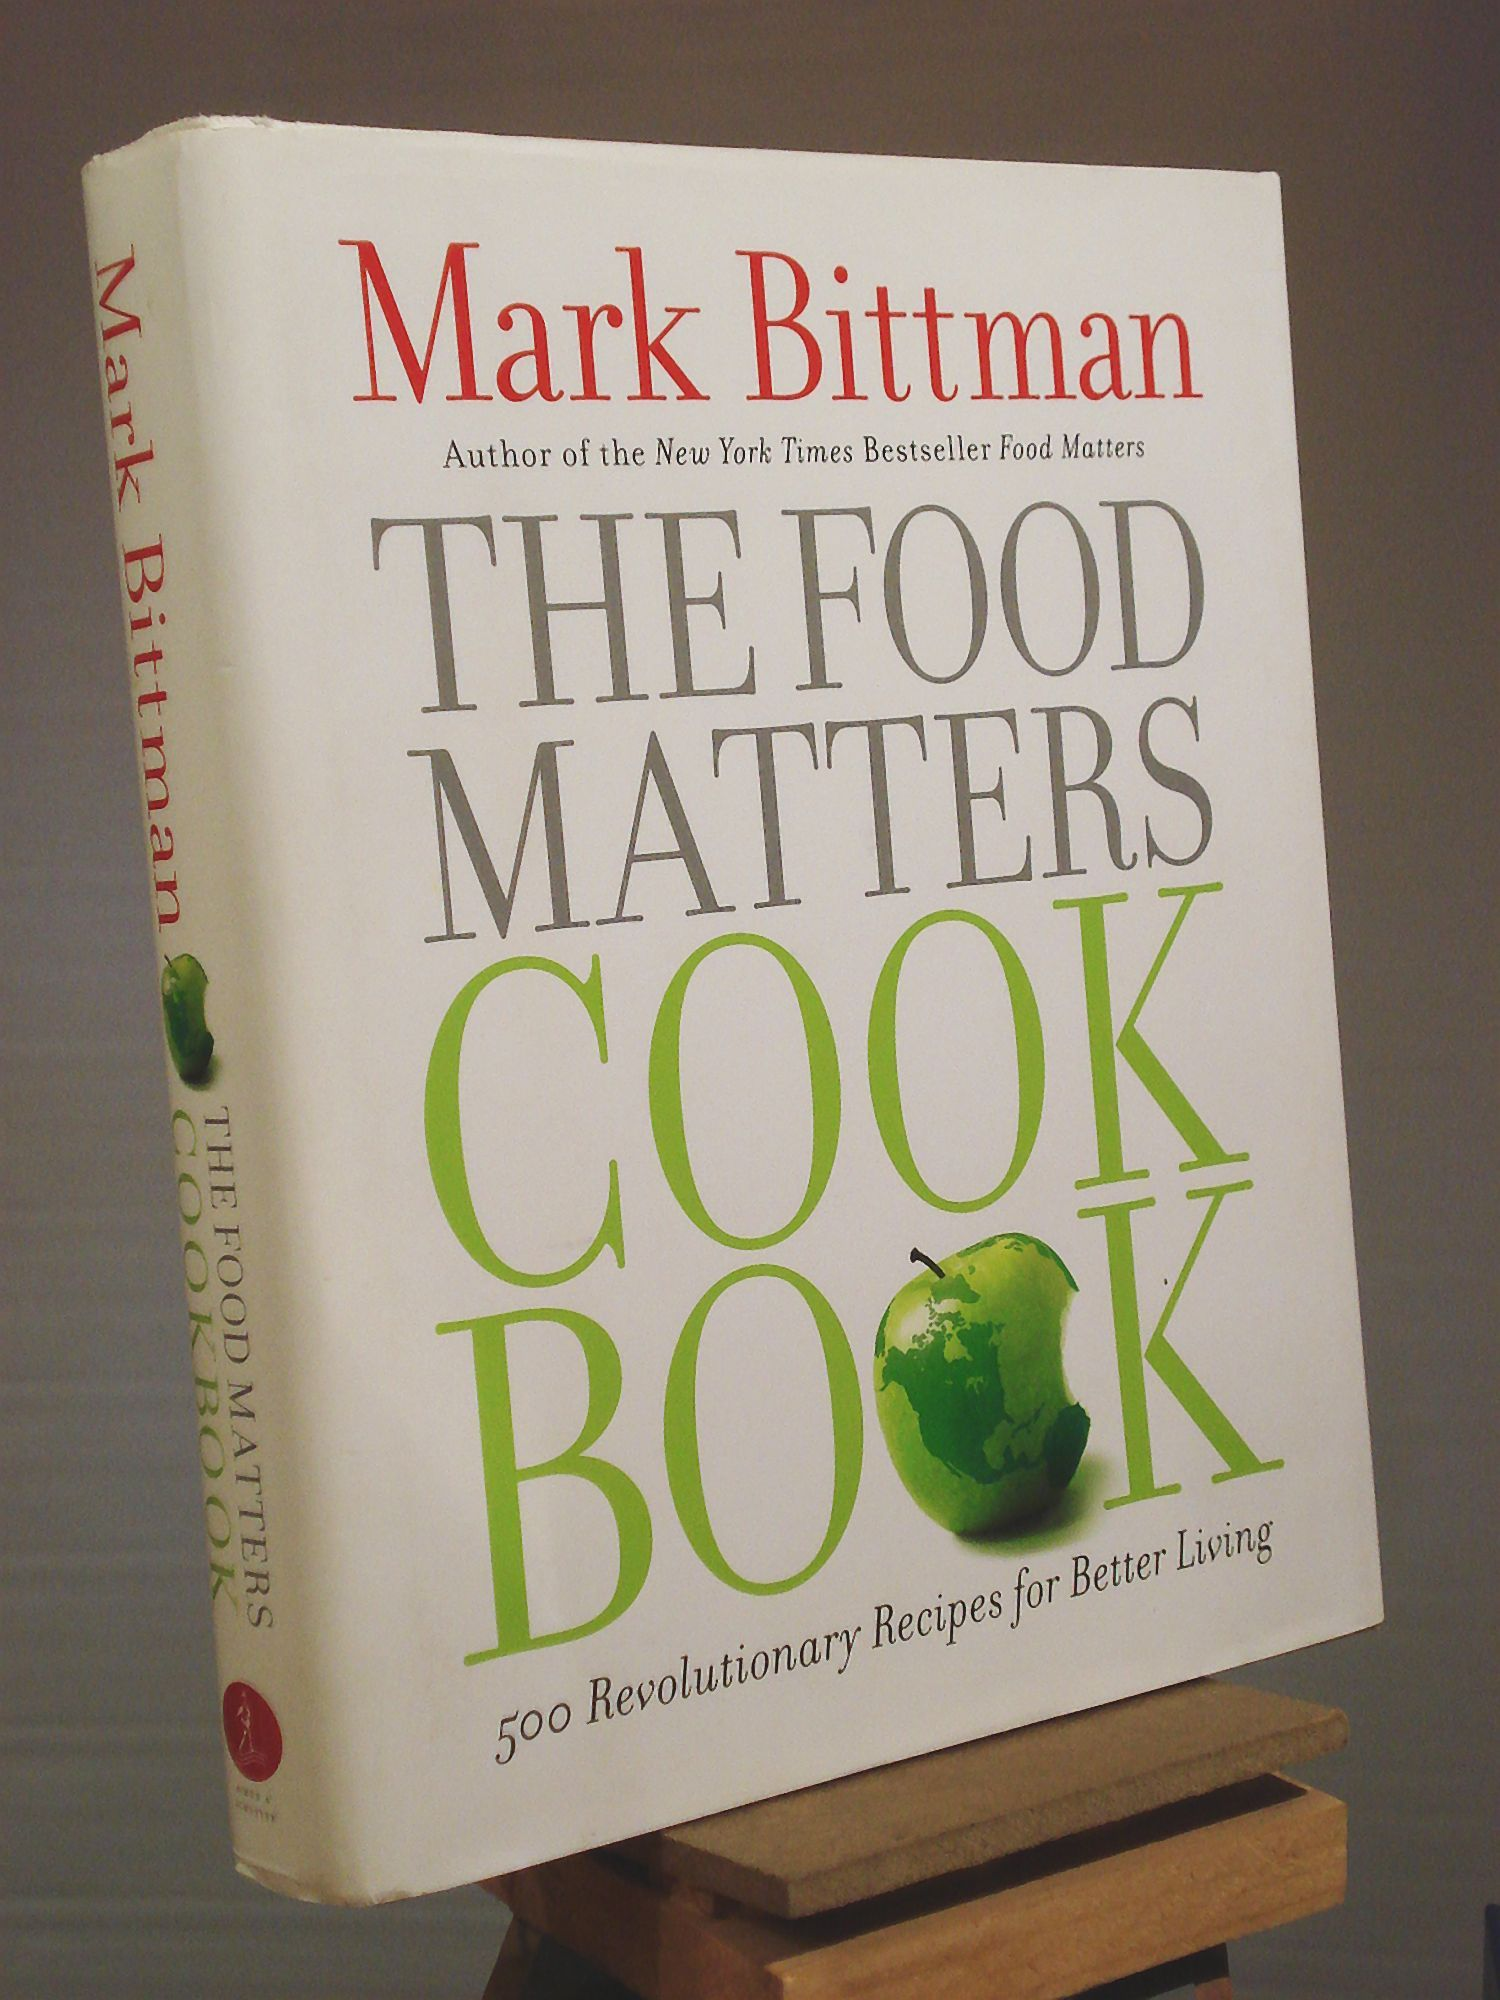 The food matters cookbook 500 revolutionary recipes for better the food matters cookbook 500 revolutionary recipes for better living by mark bittman 1st edition 1st printing 2010 from henniker book farm and forumfinder Images